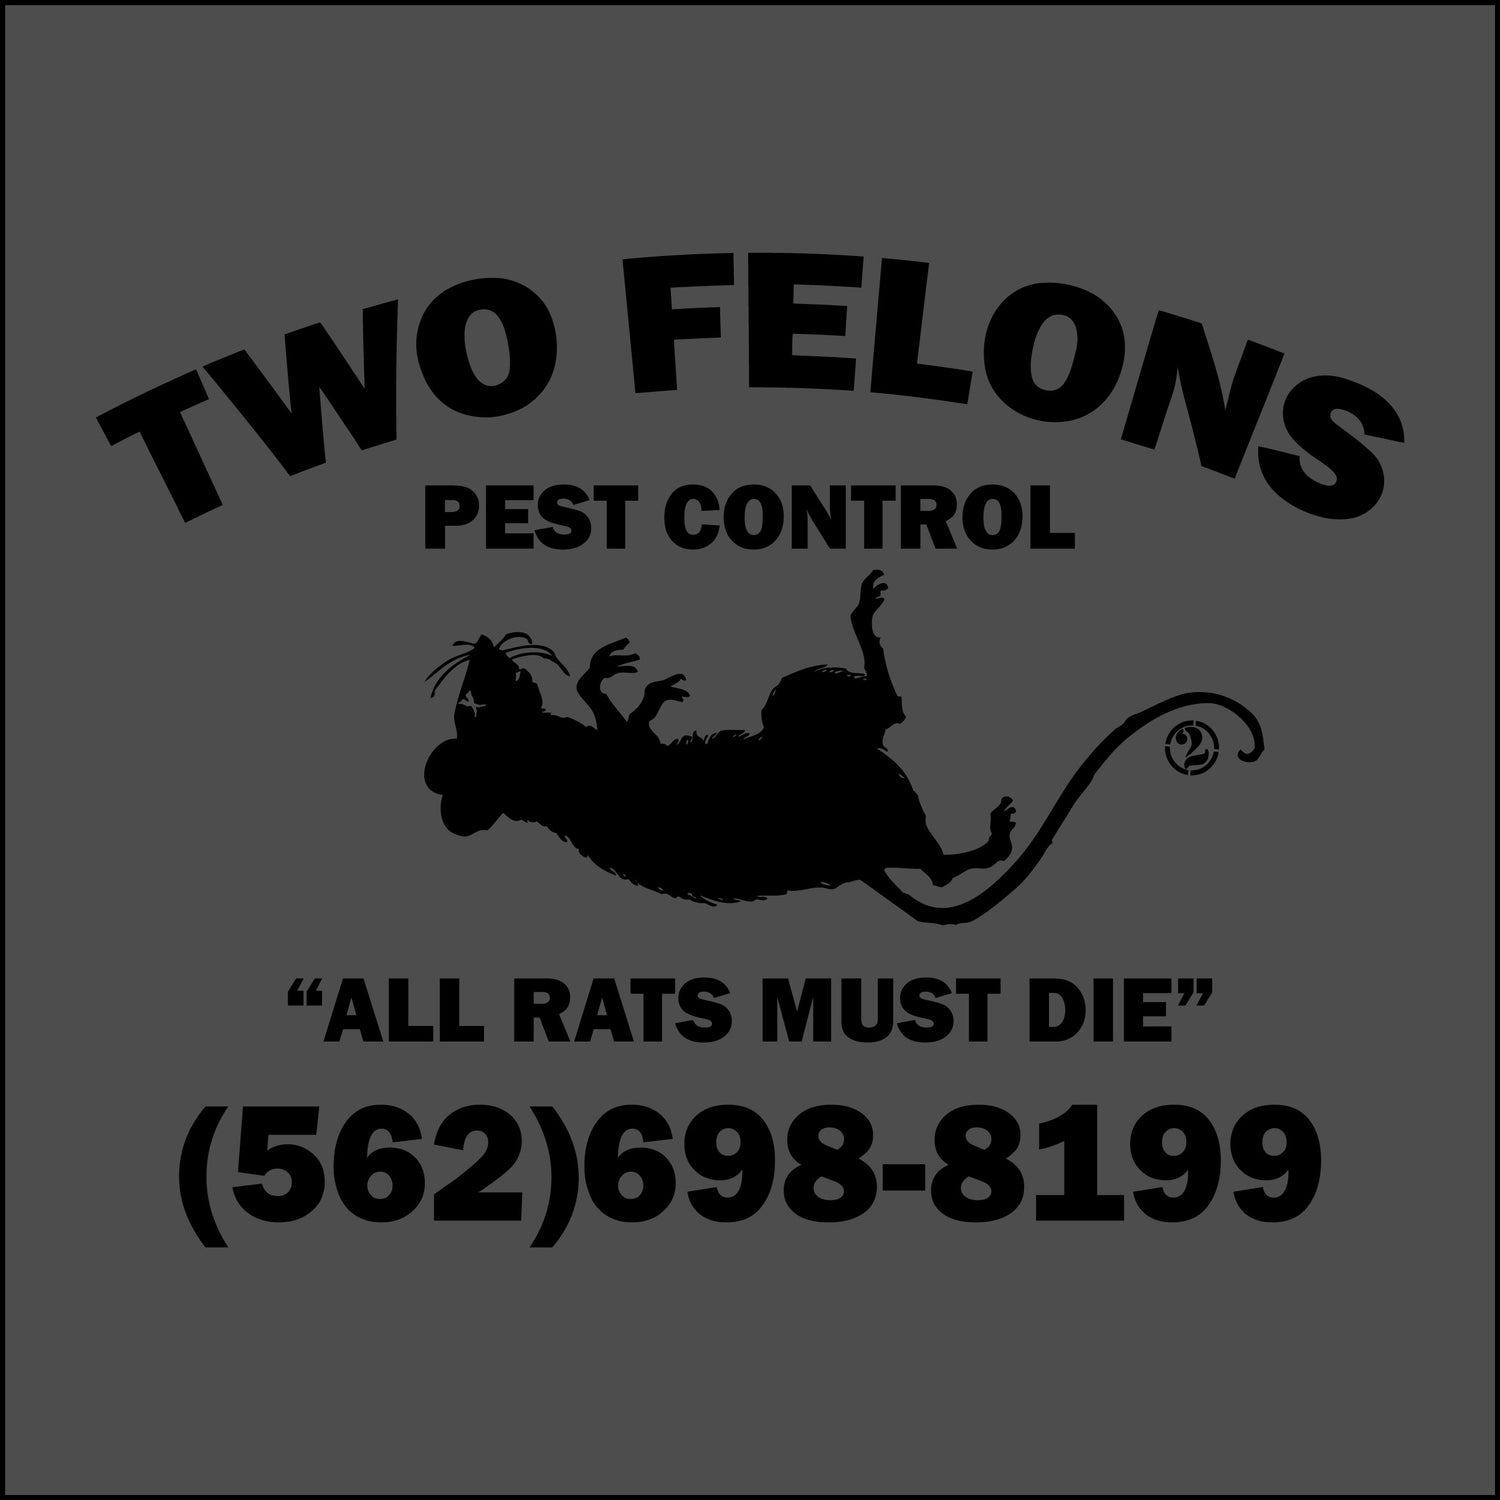 """Image of Two Felons """"Pest Control"""" tank (Char)"""